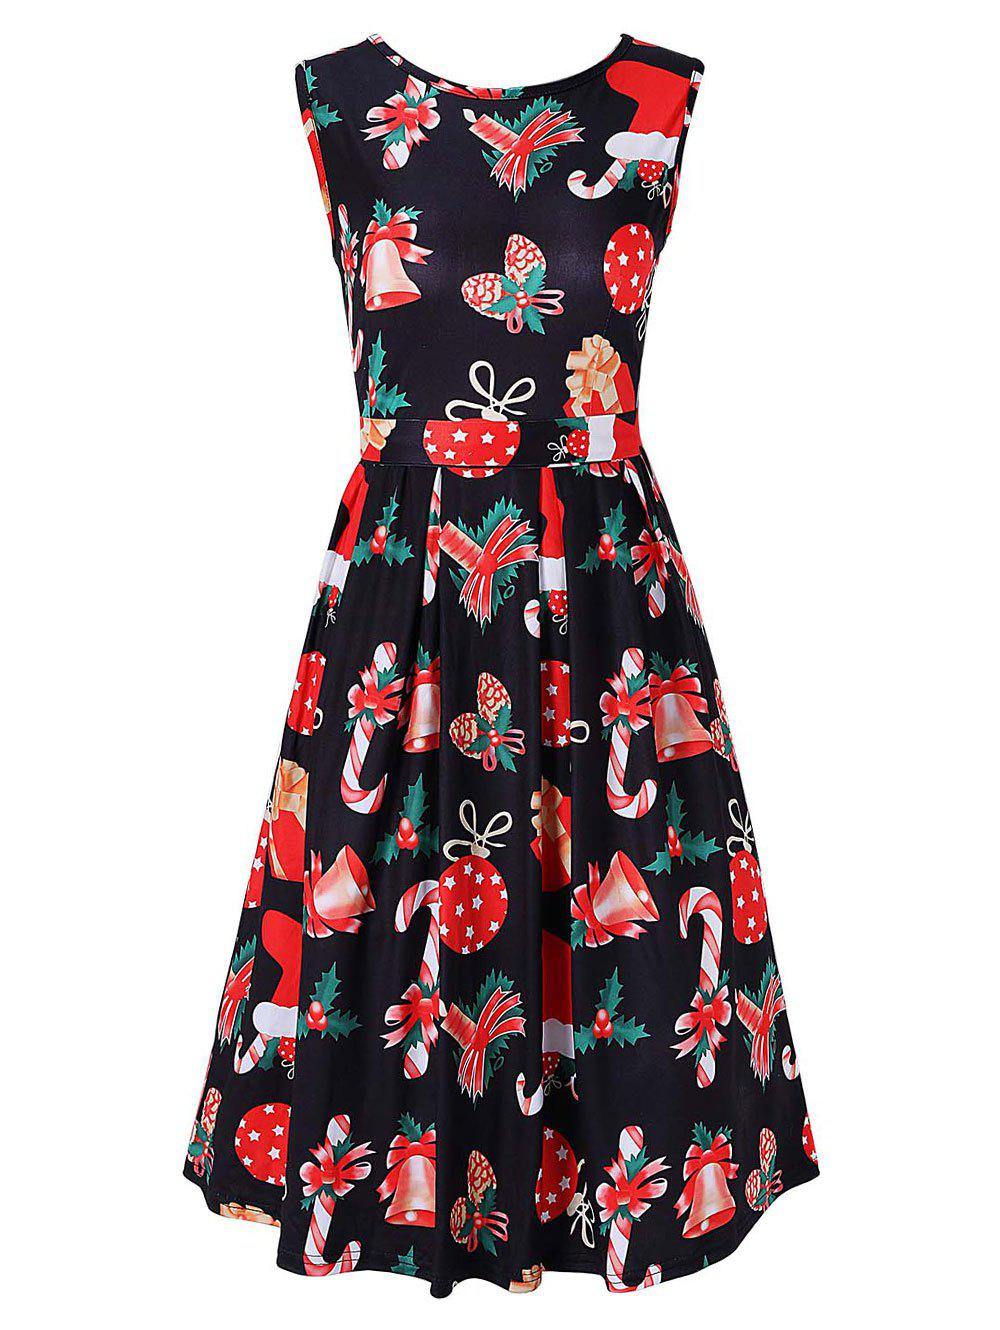 Printed Christmas A Line Party Dress женское платье a line slim dresses girls ladies shealth dress для live show party dancing